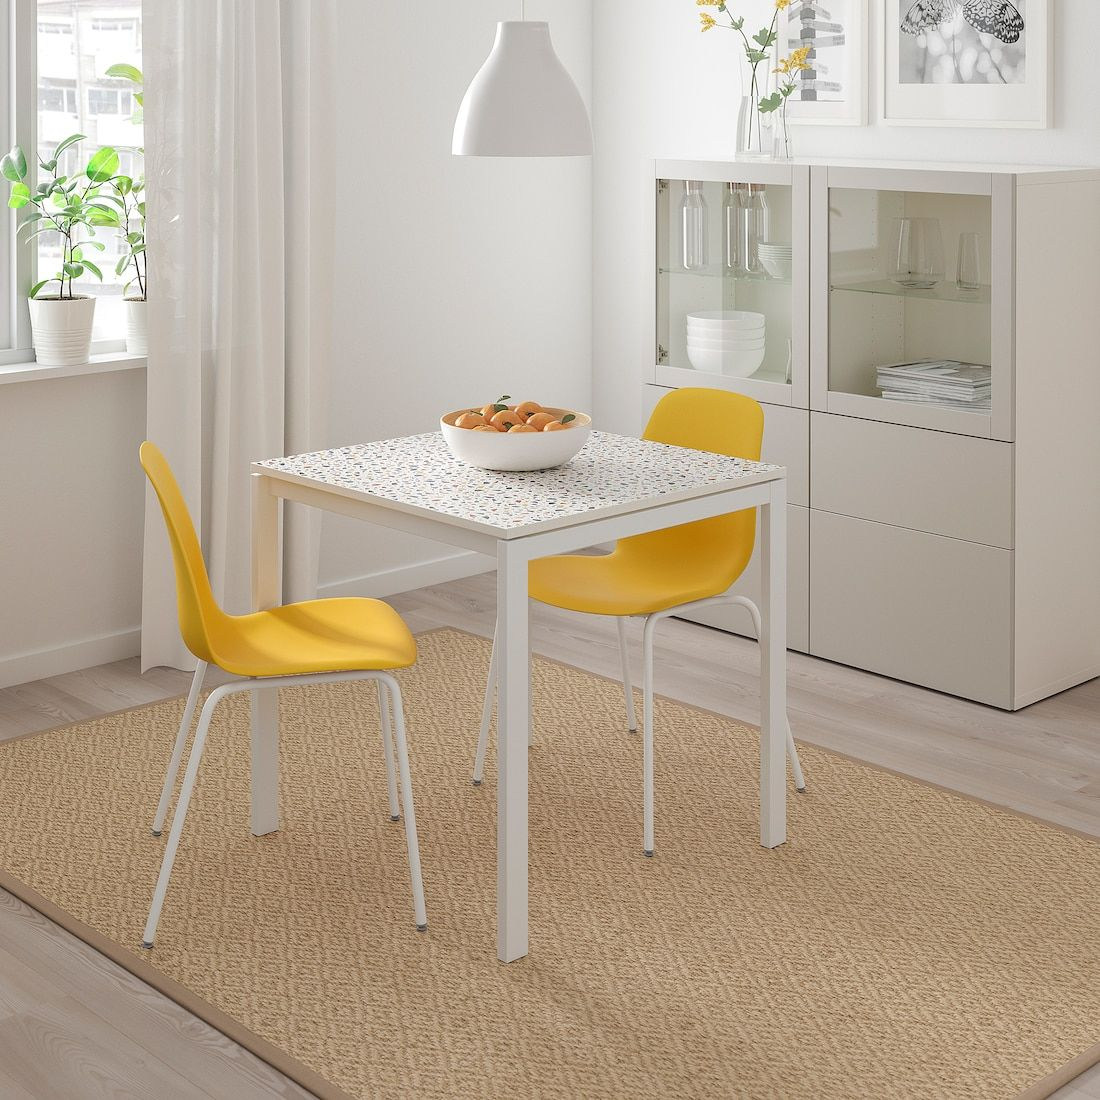 29+ Small white dining table for 2 Various Types